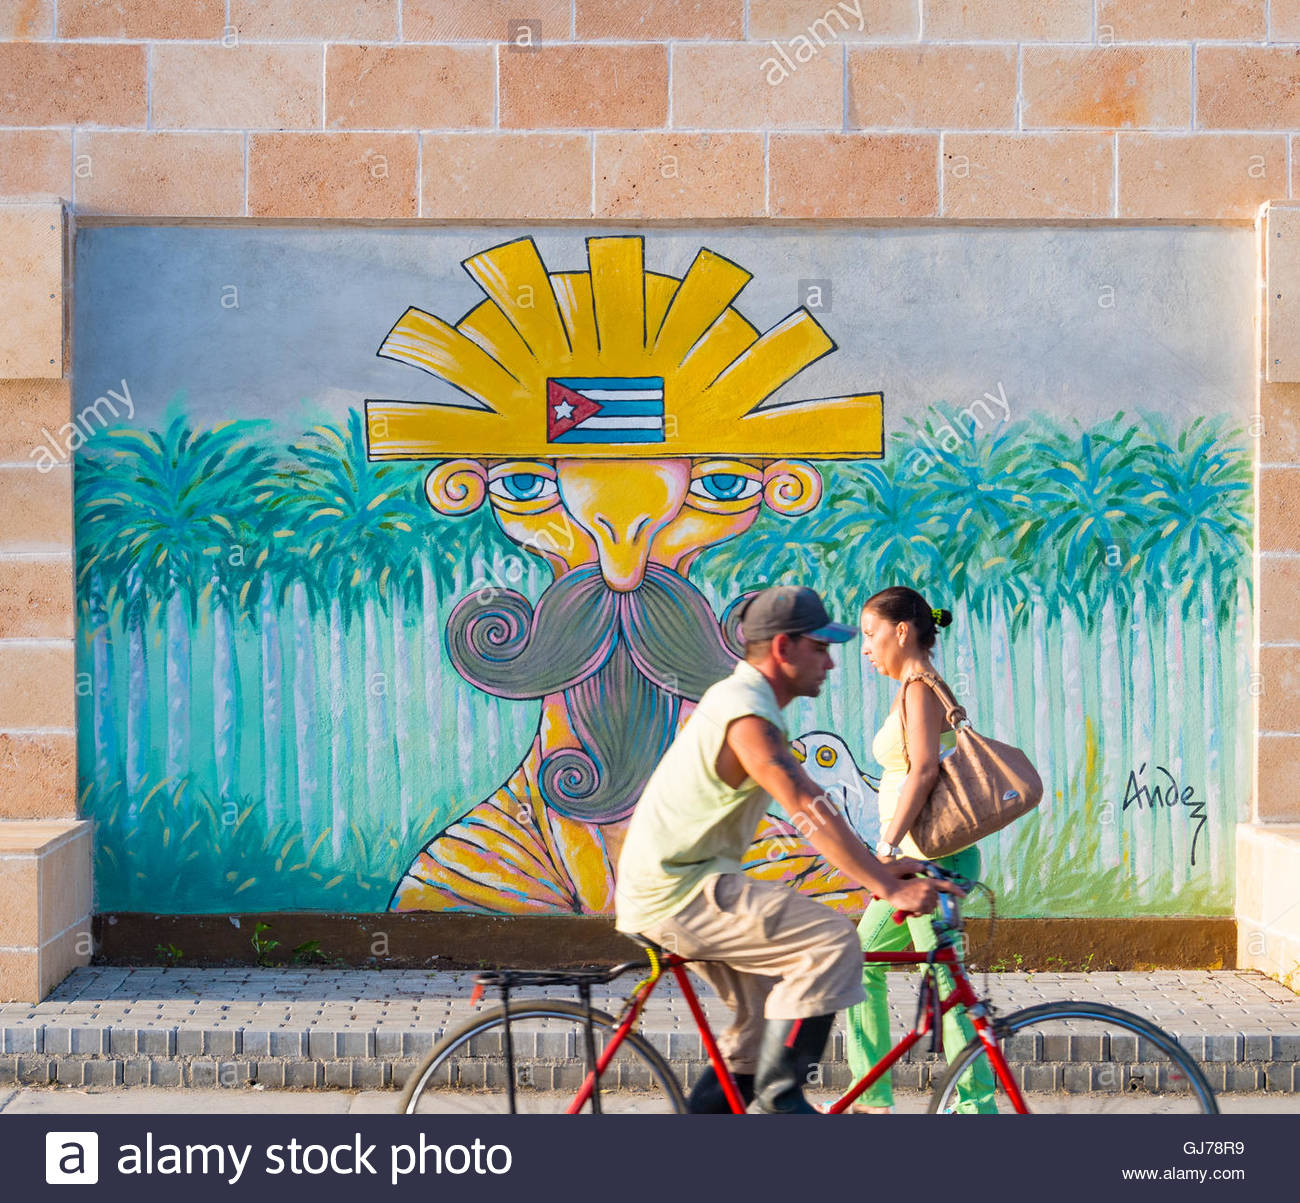 Cuban people lifestyle and anti war art painted by Cubans humorists in a large city wall. - Stock Image